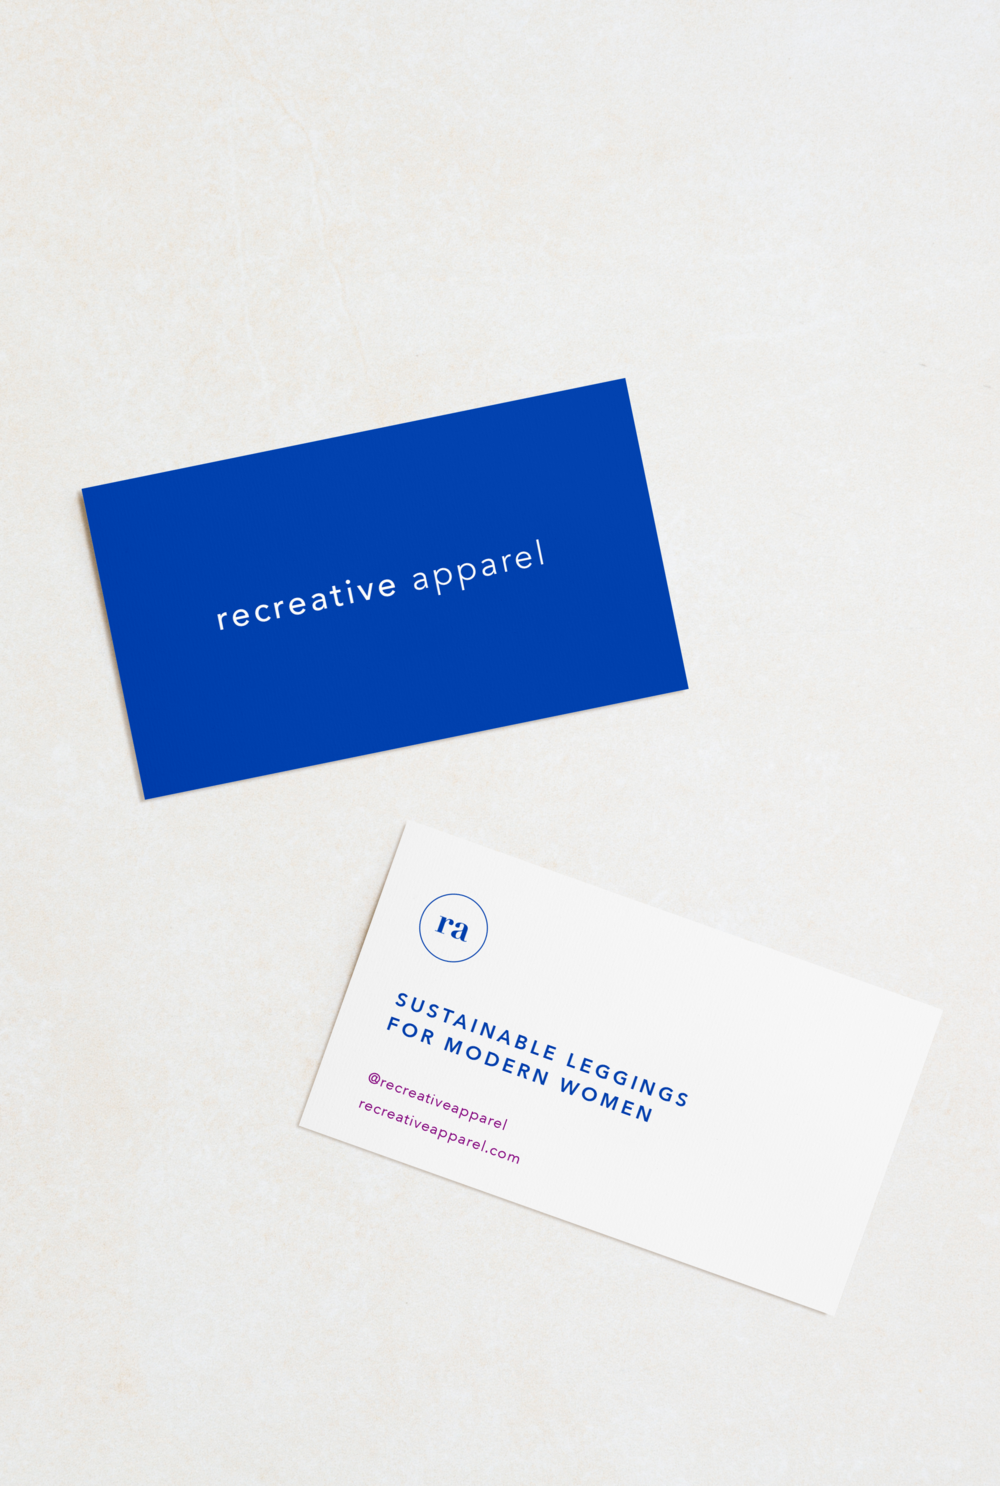 Recreative Apparel Business card design by Salt Design Co.